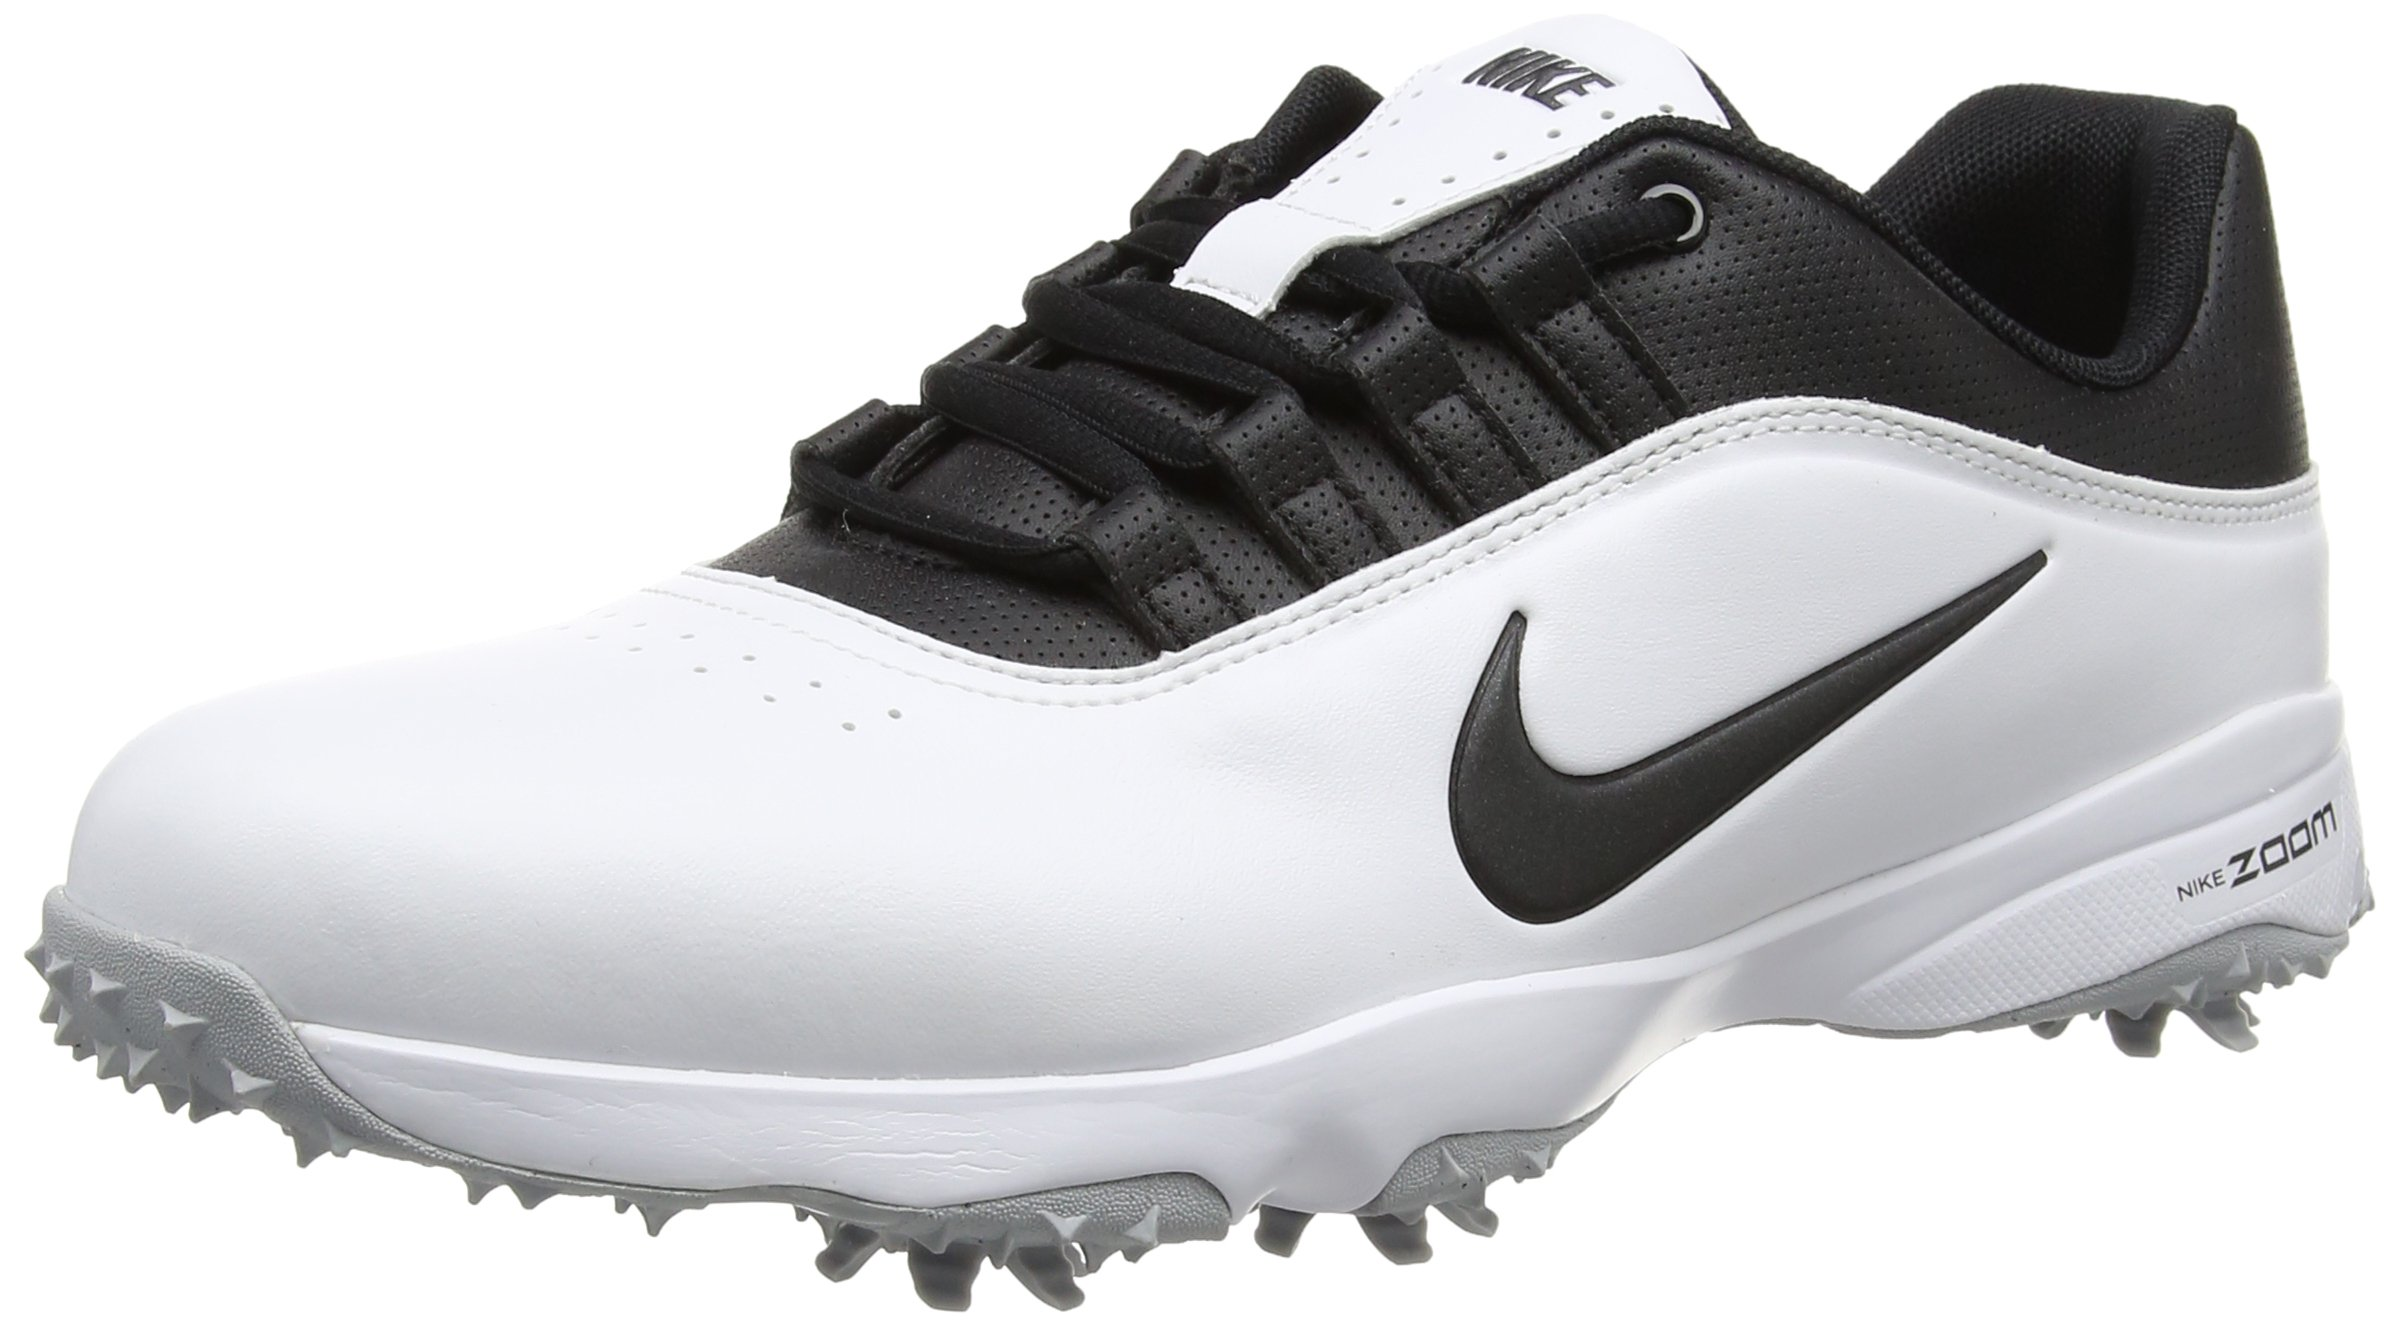 NIKE Air Zoom Rival 5 Mens Golf Shoes (10.5 D(M) US) by NIKE